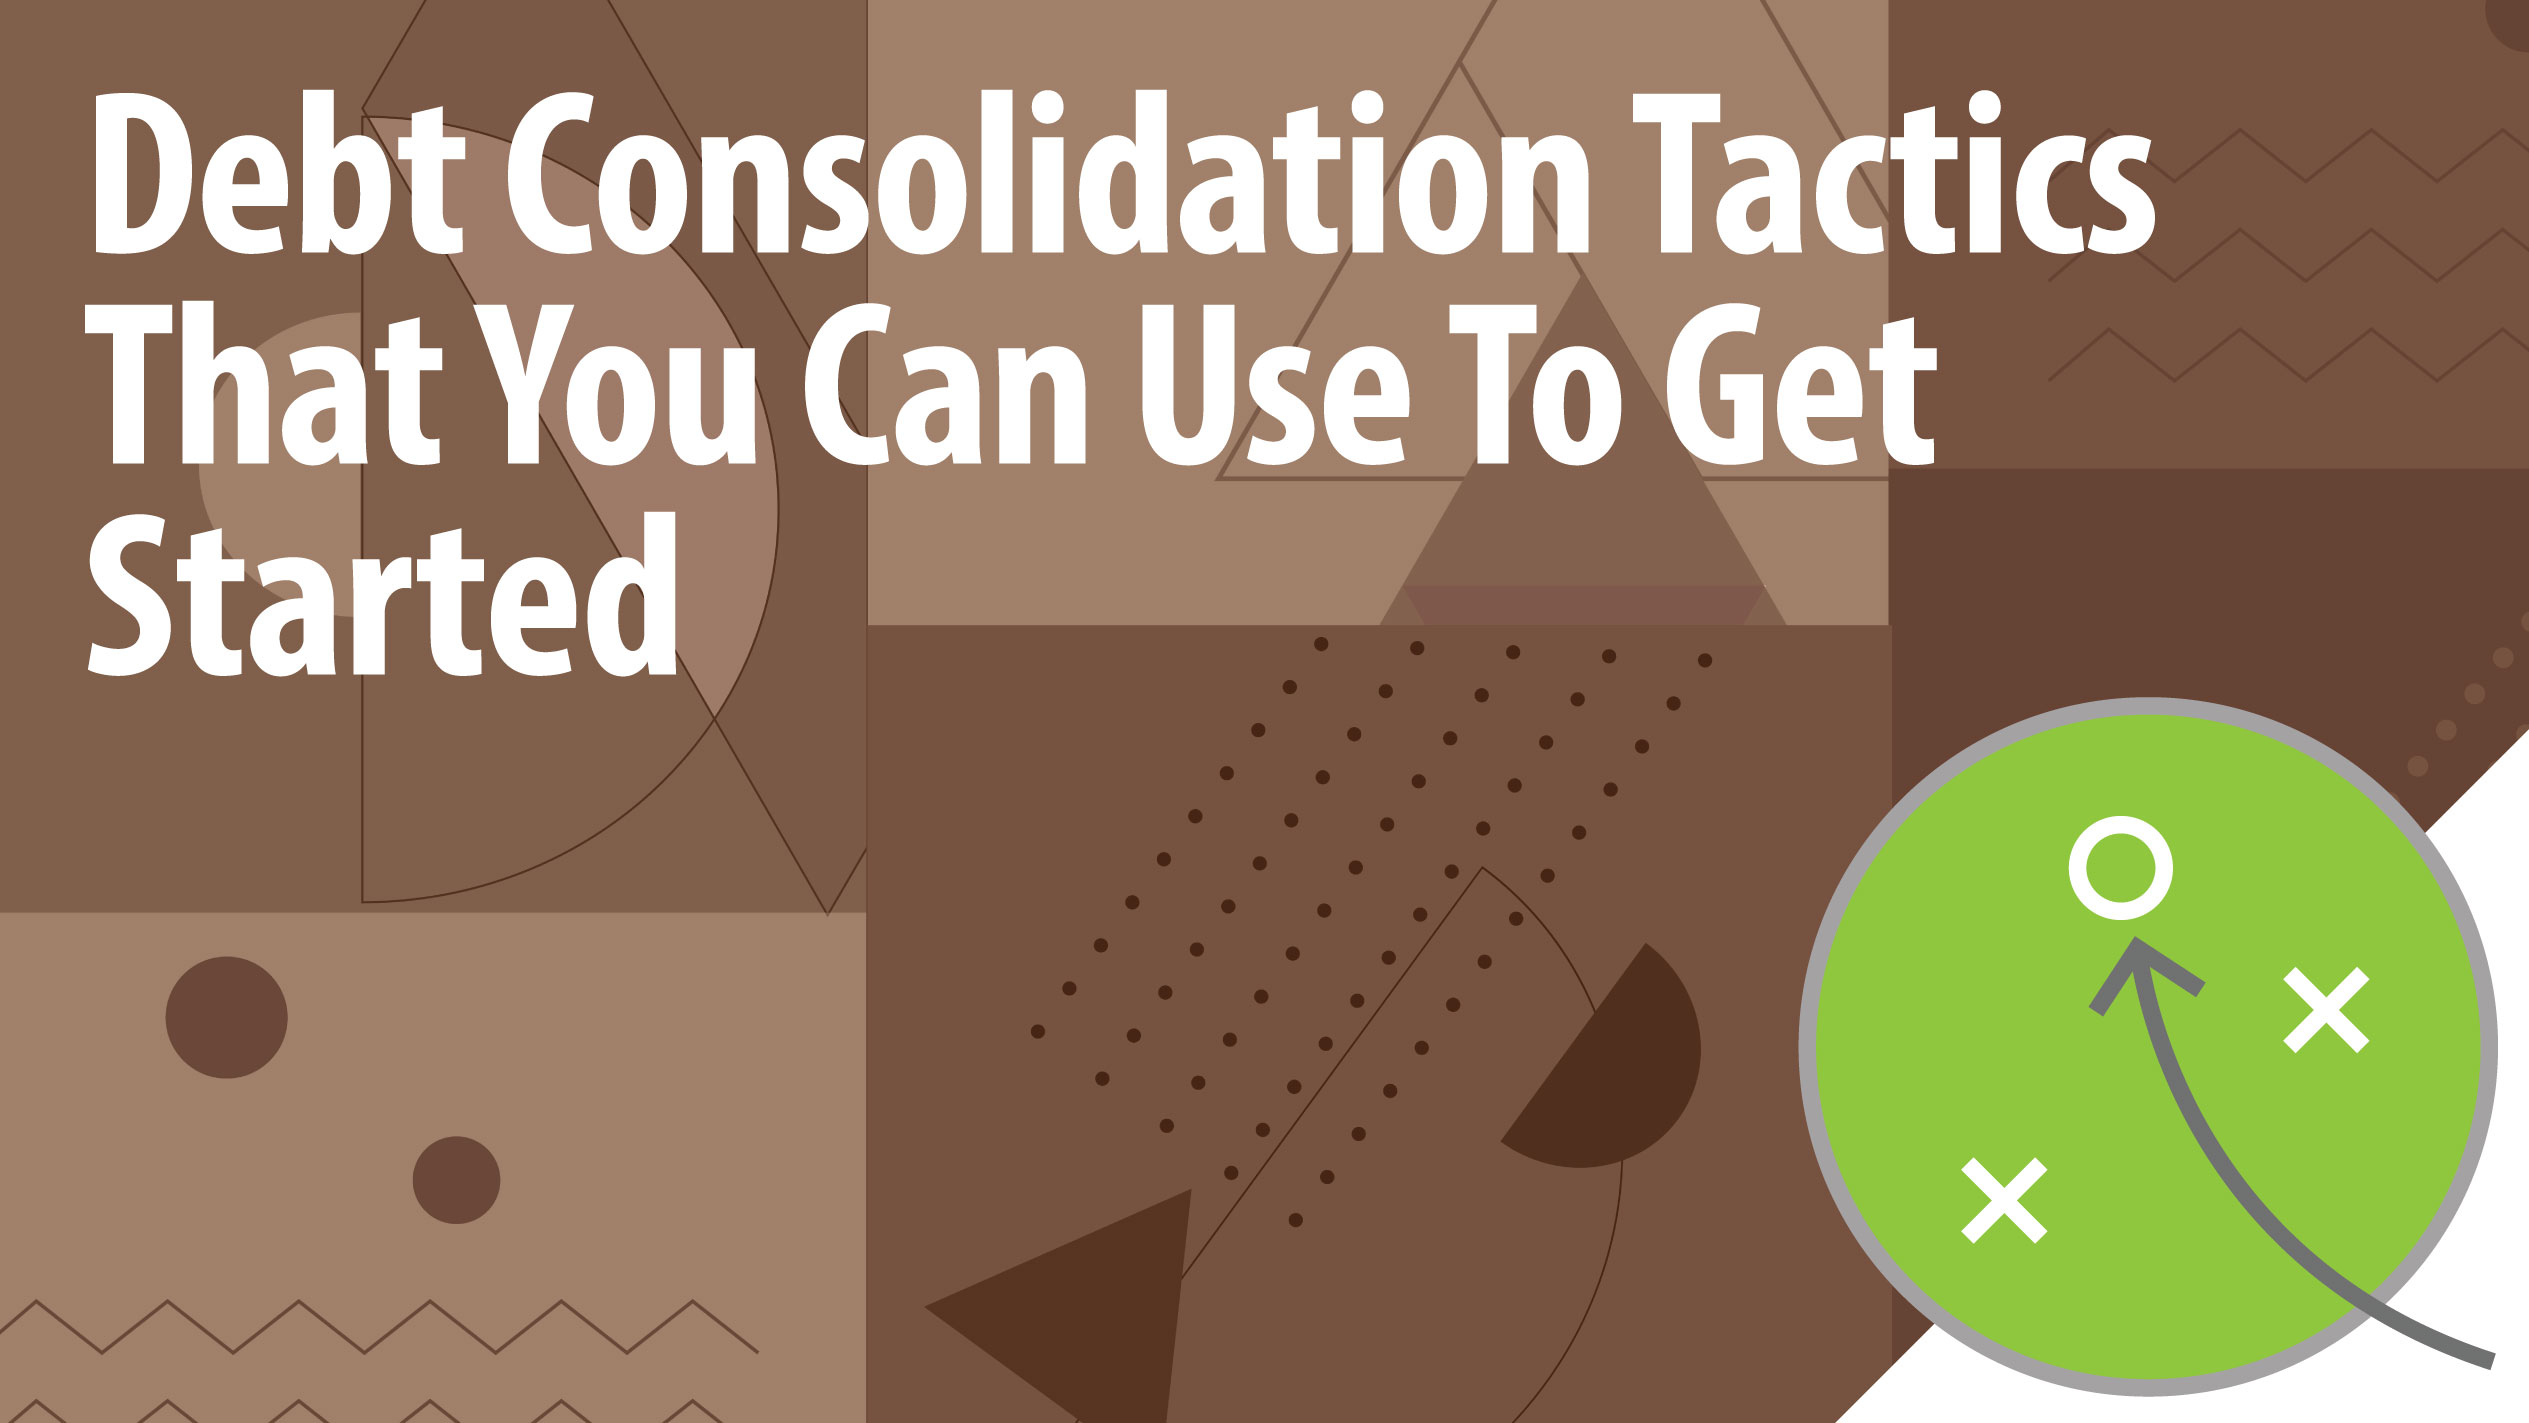 Debt Consolidation Tactics That You Can Use To Get Started